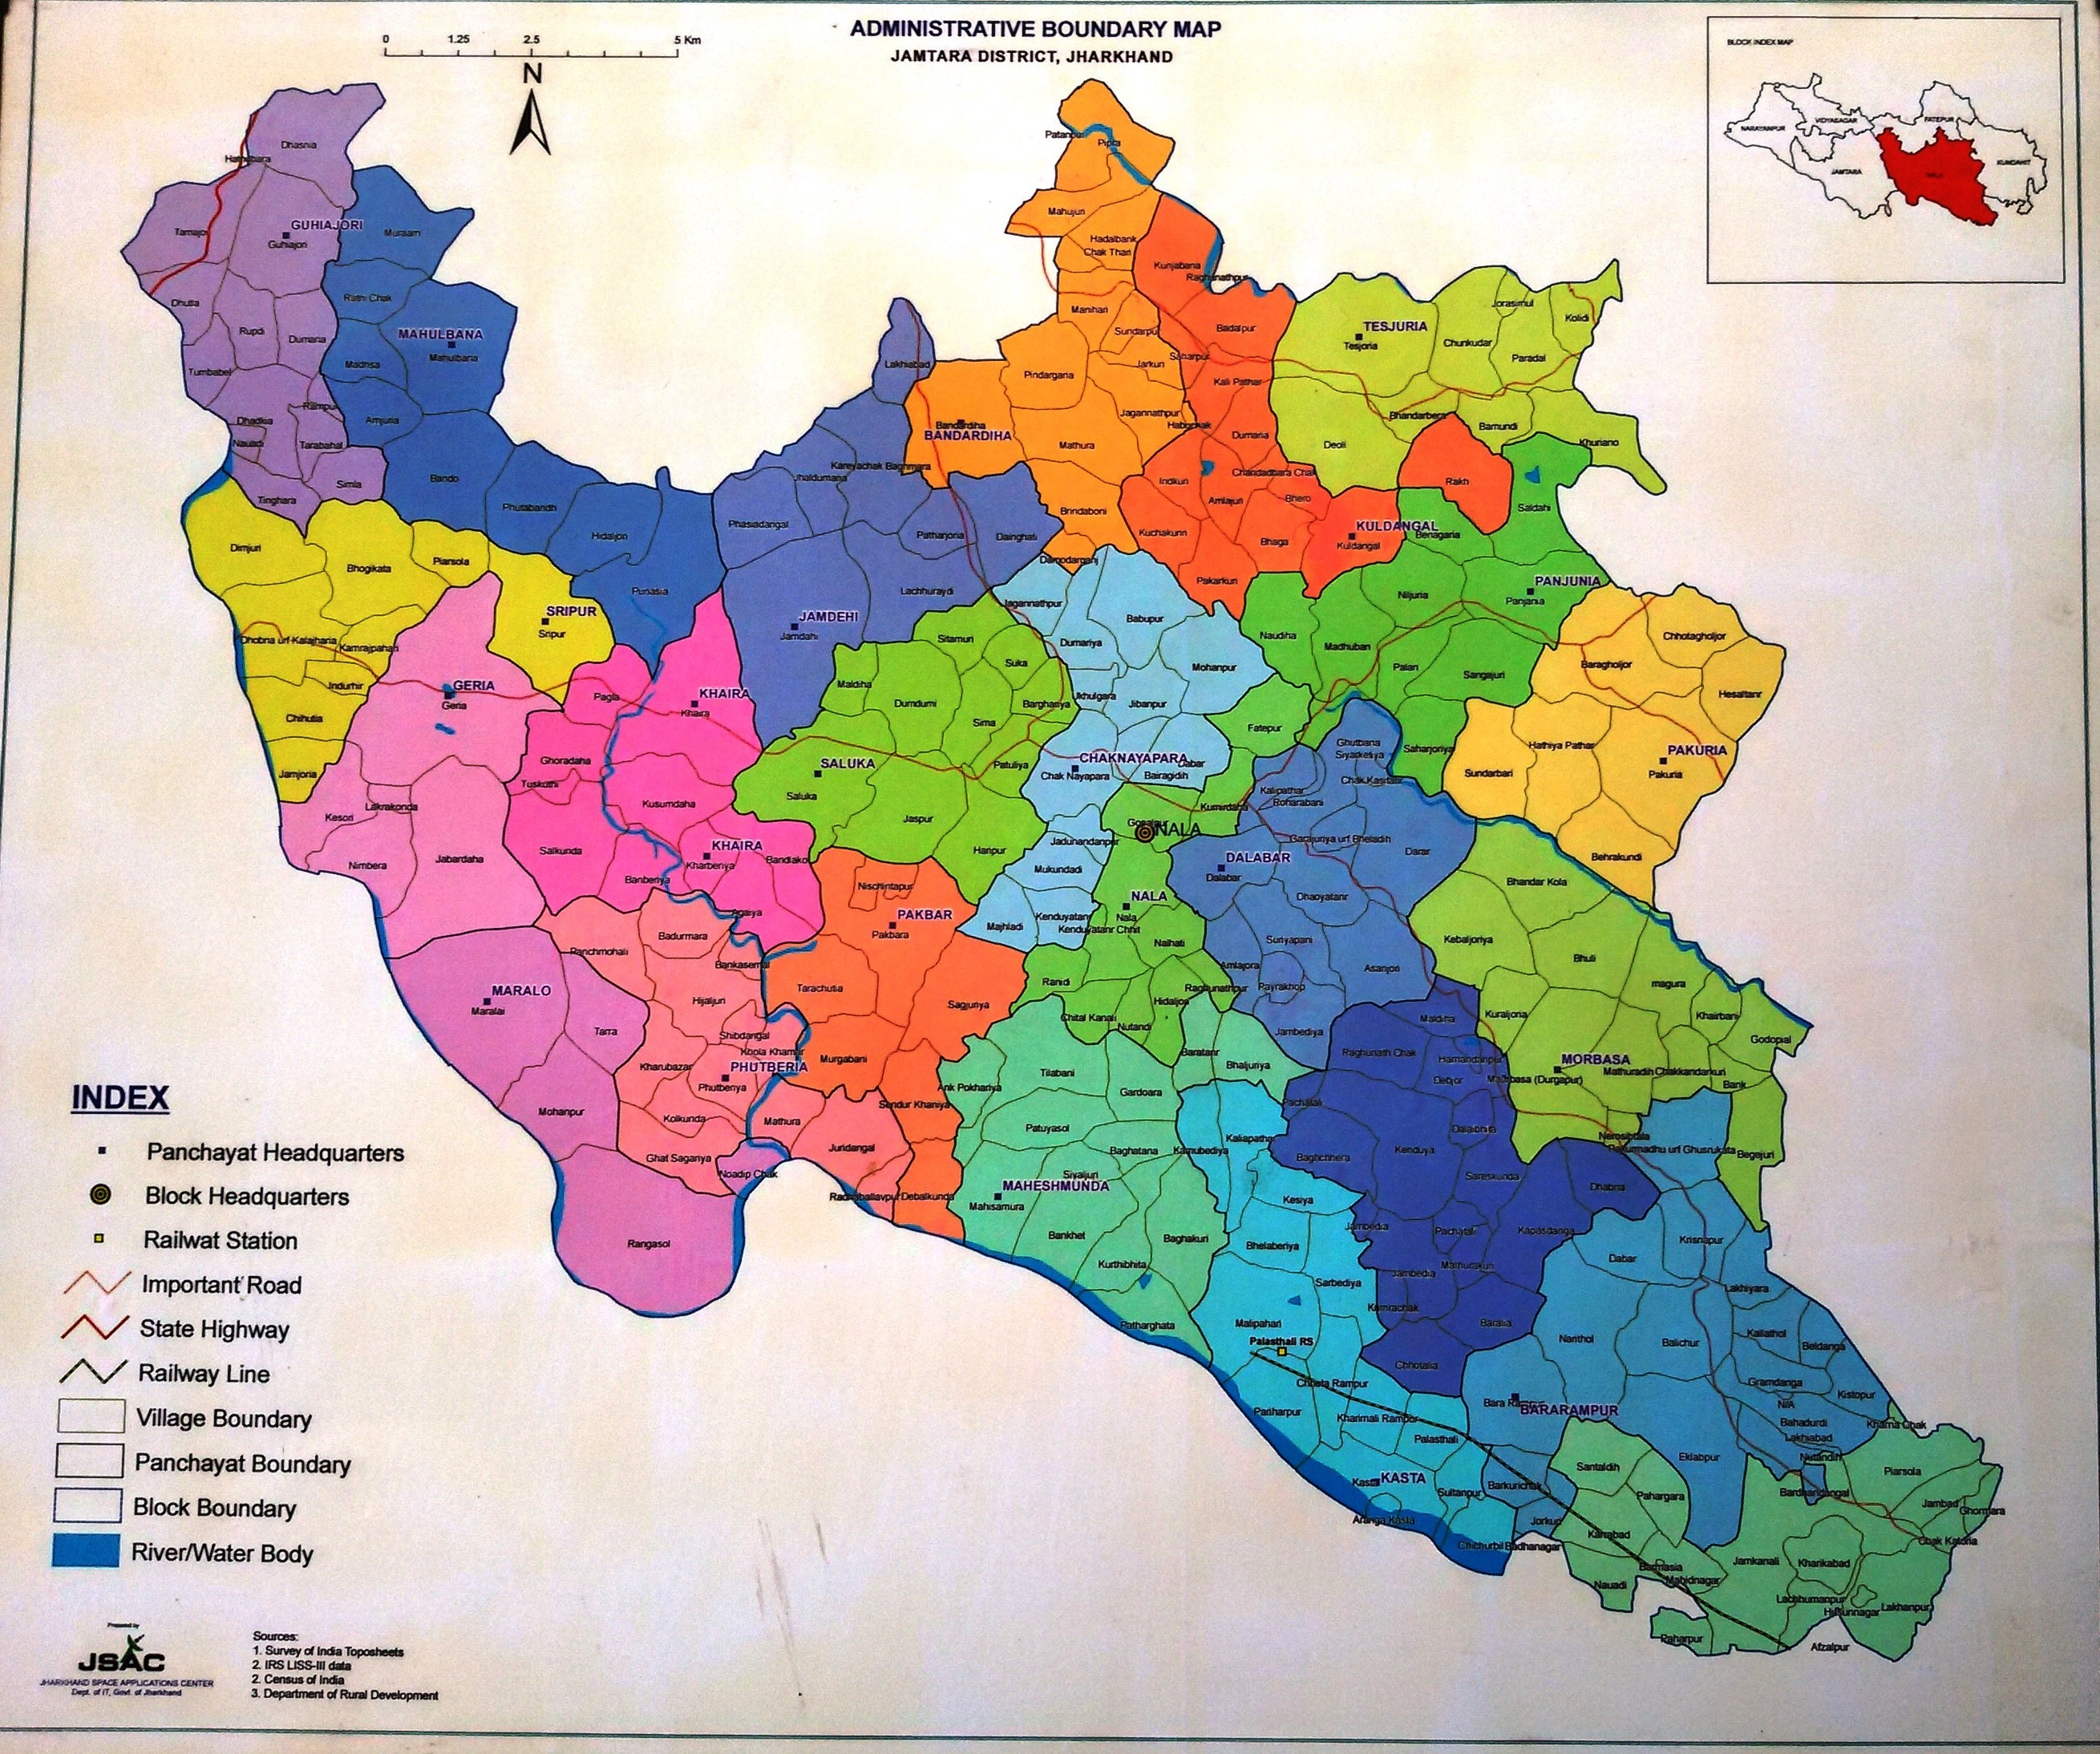 Map Of District District Jamtara Government Of